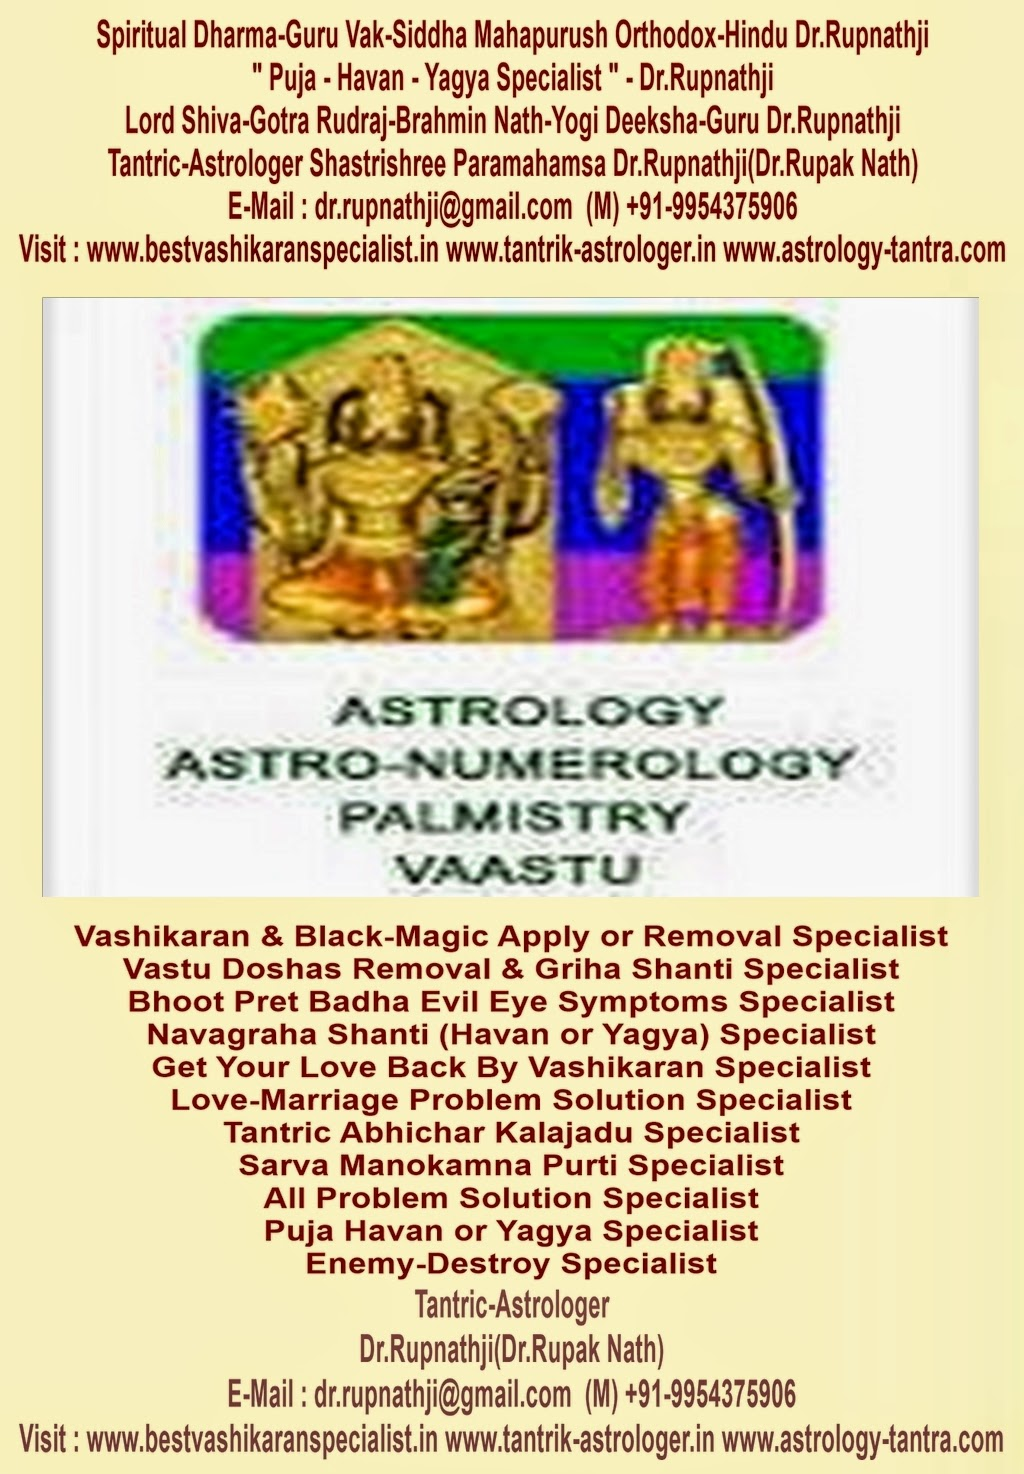 Vedic Astrology fundamentals and basic concepts